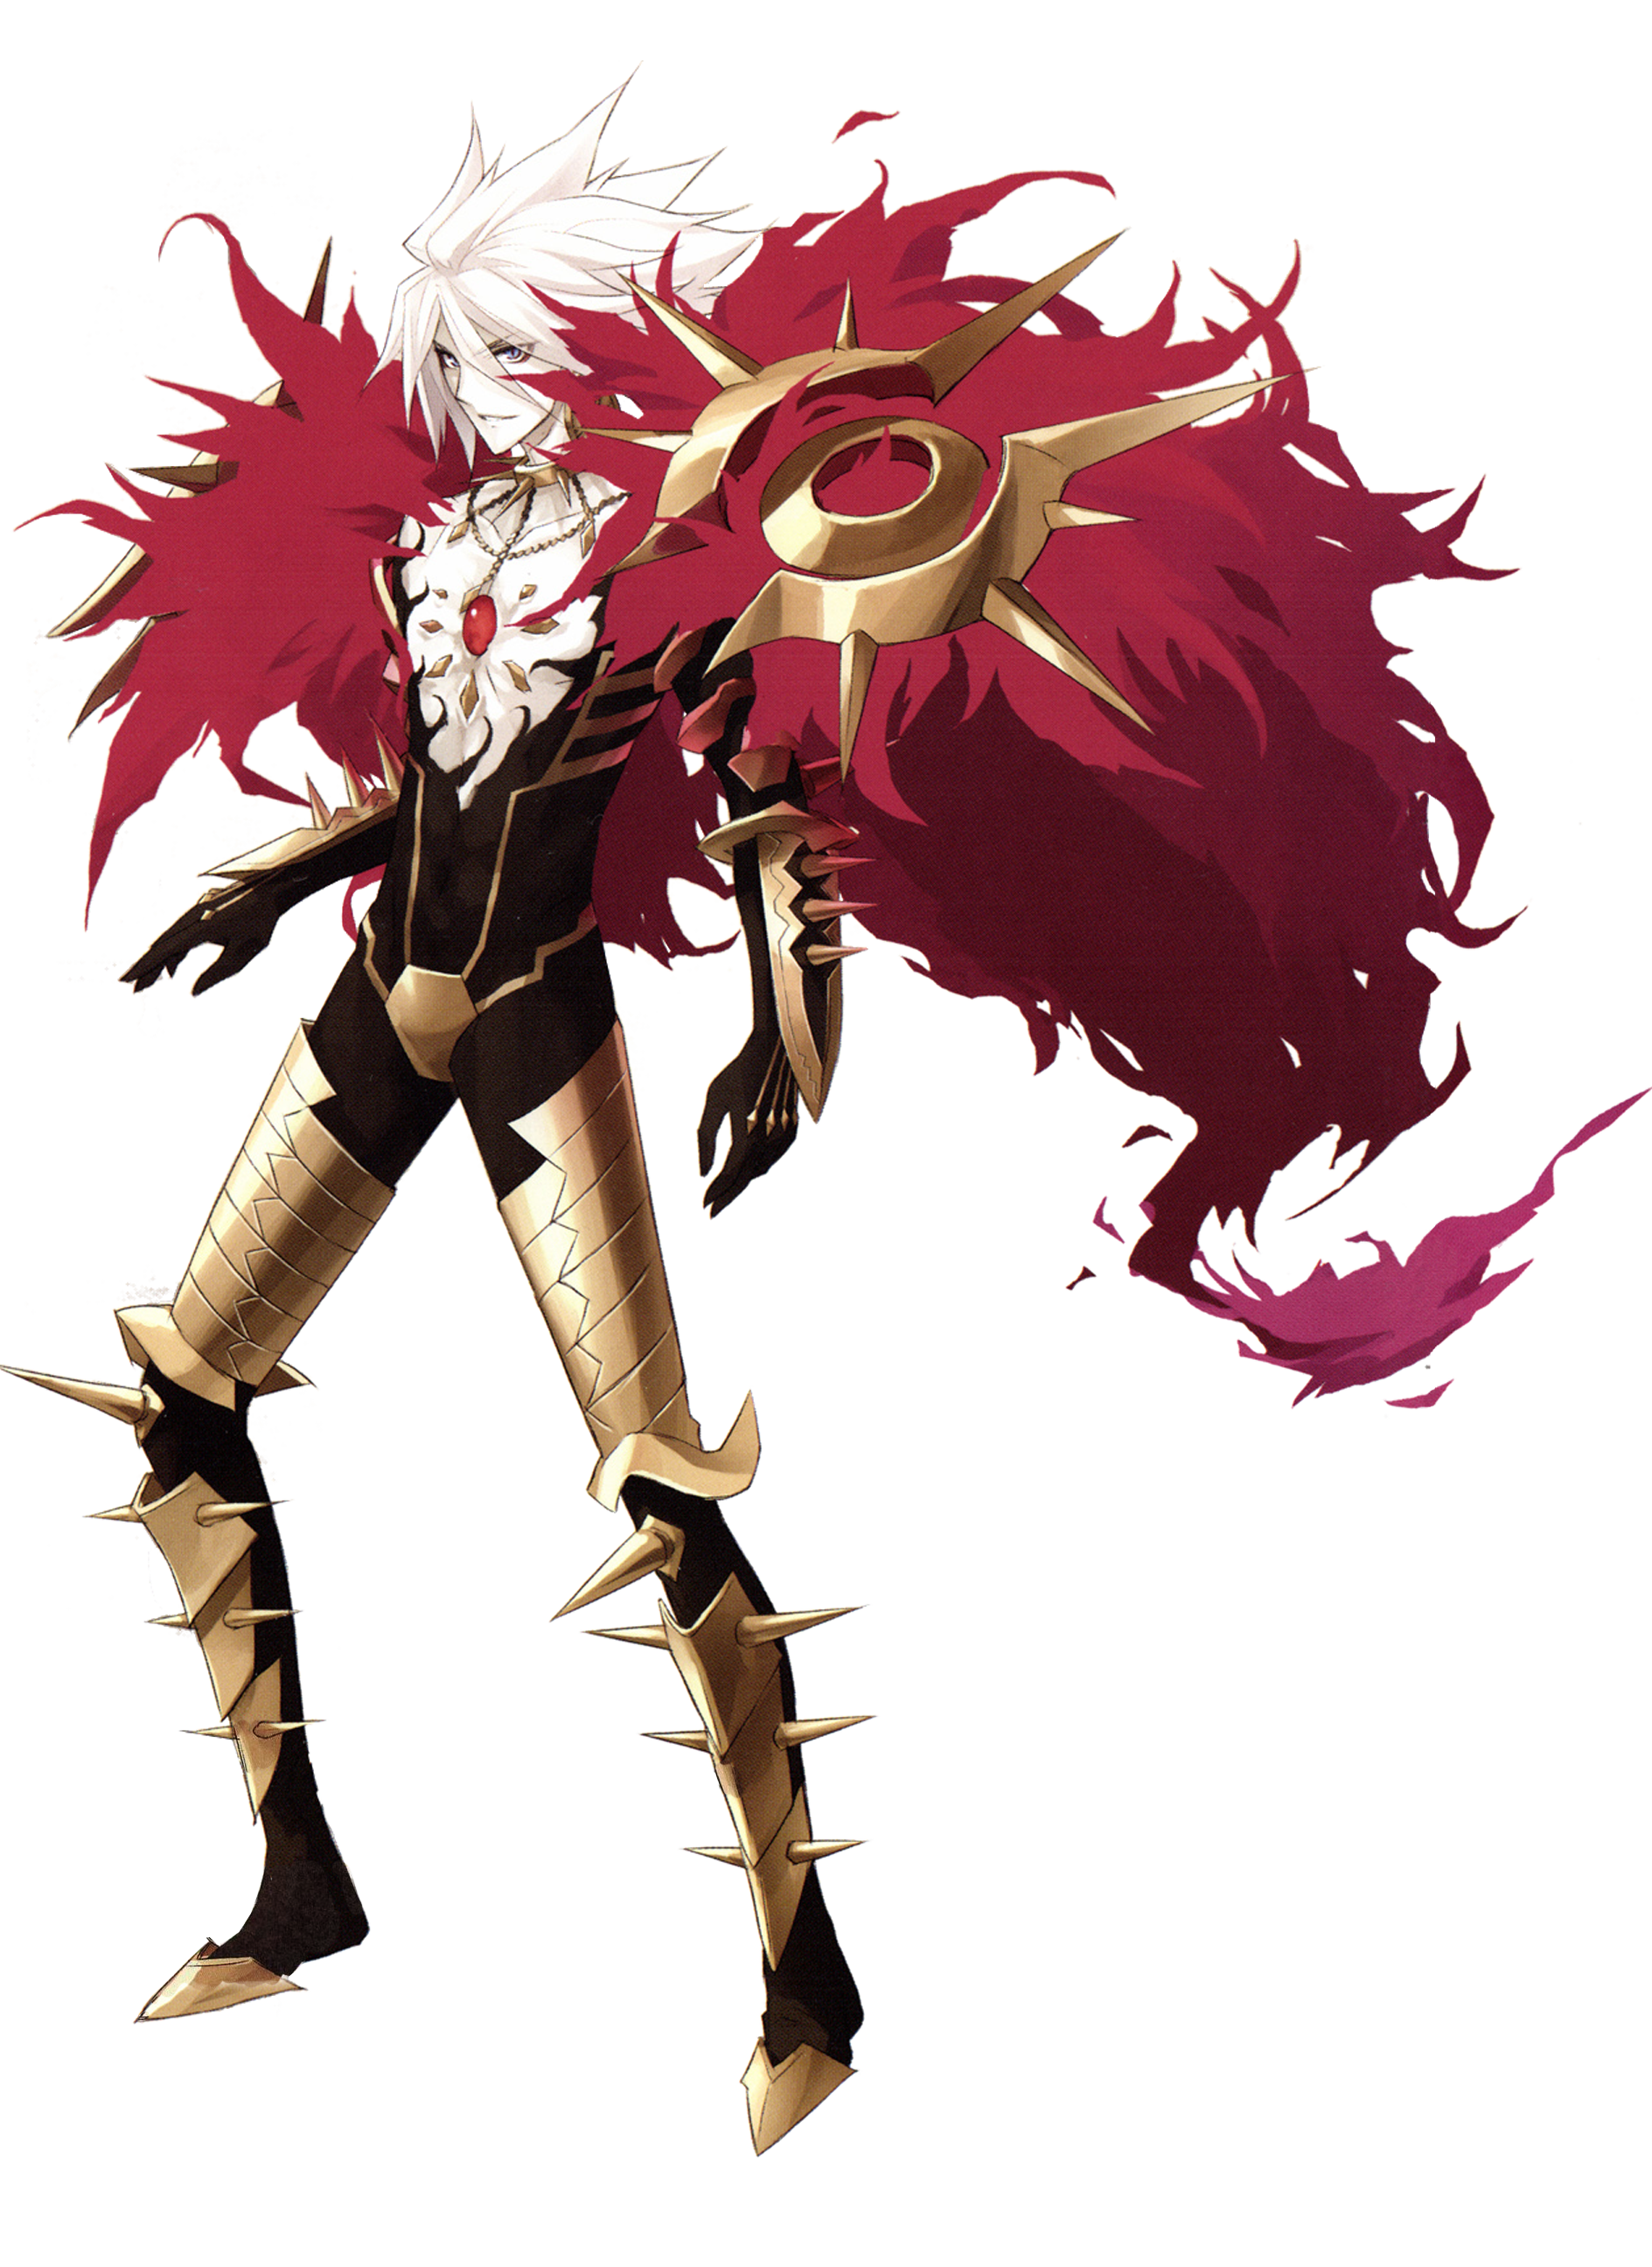 http://images1.wikia.nocookie.net/__cb20130817125108/typemoon/images/8/8d/Lancer_of_red.png